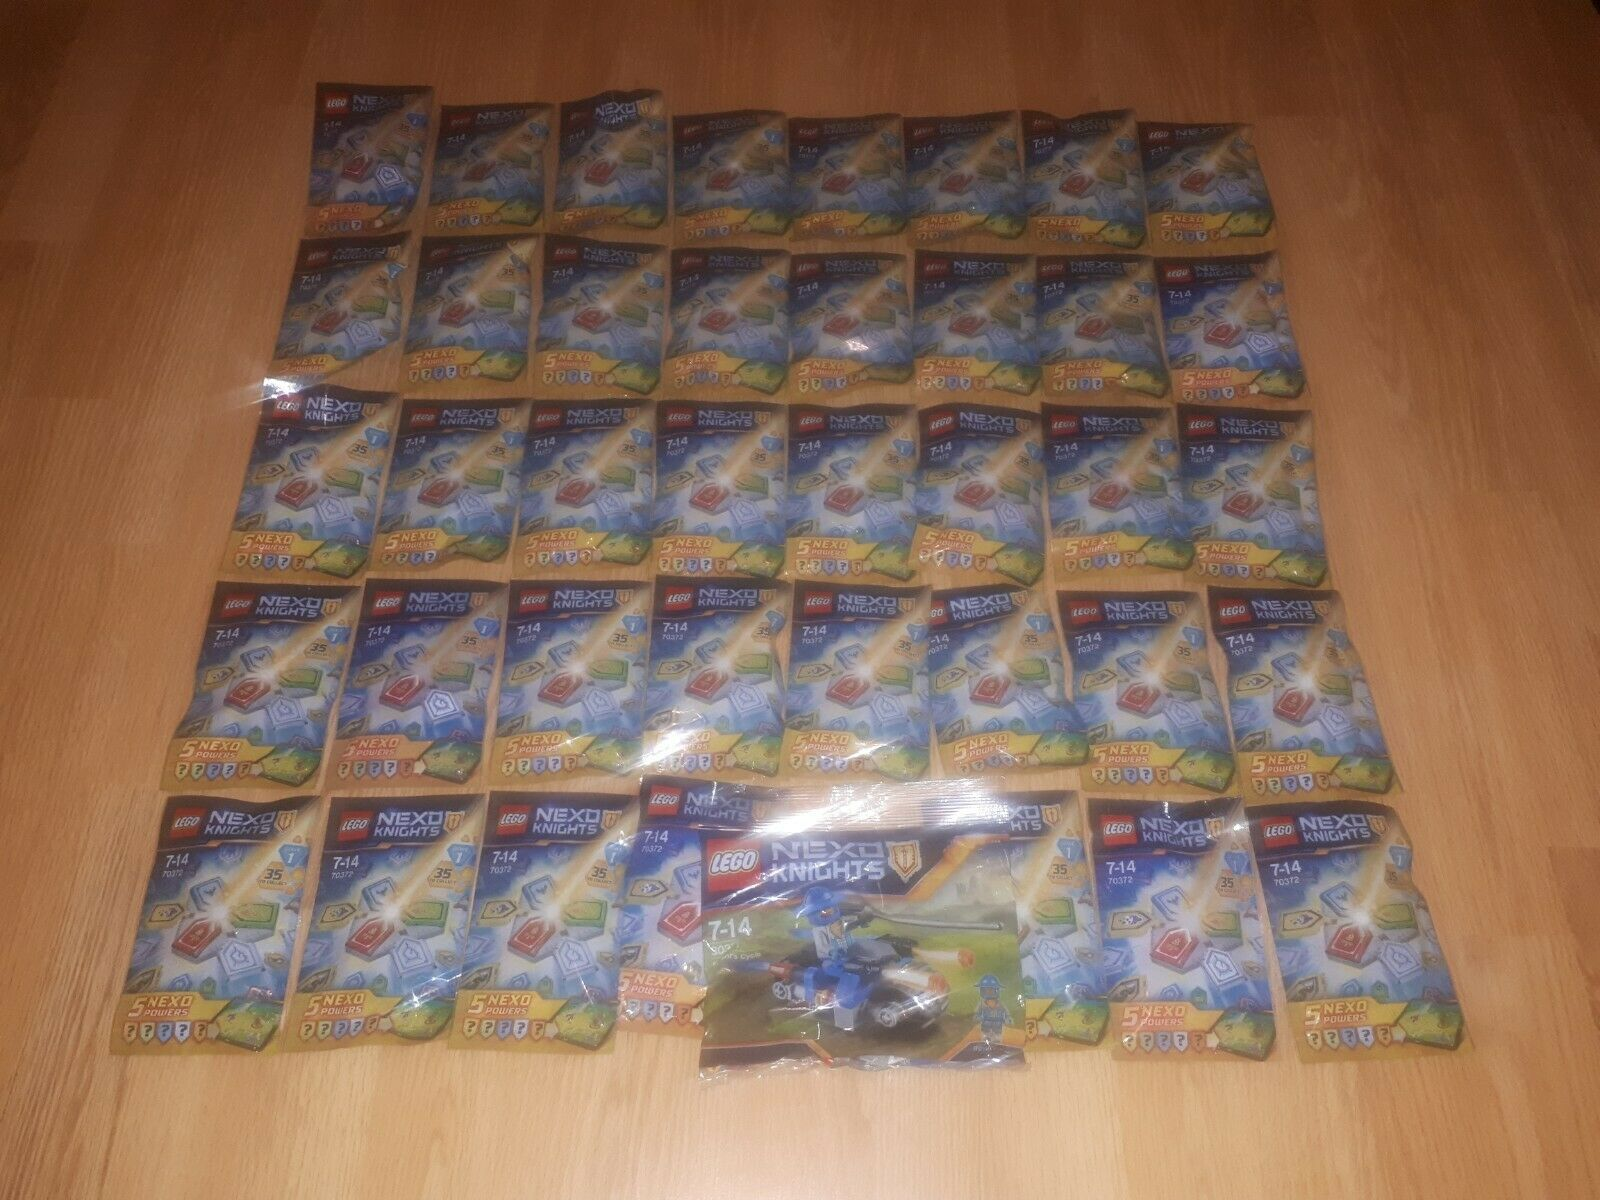 LEGO NEXO KNIGHTS SET 30371 'Knight's Cycle' + 39 x BLIND BAGS of 5 NEXO POWERS